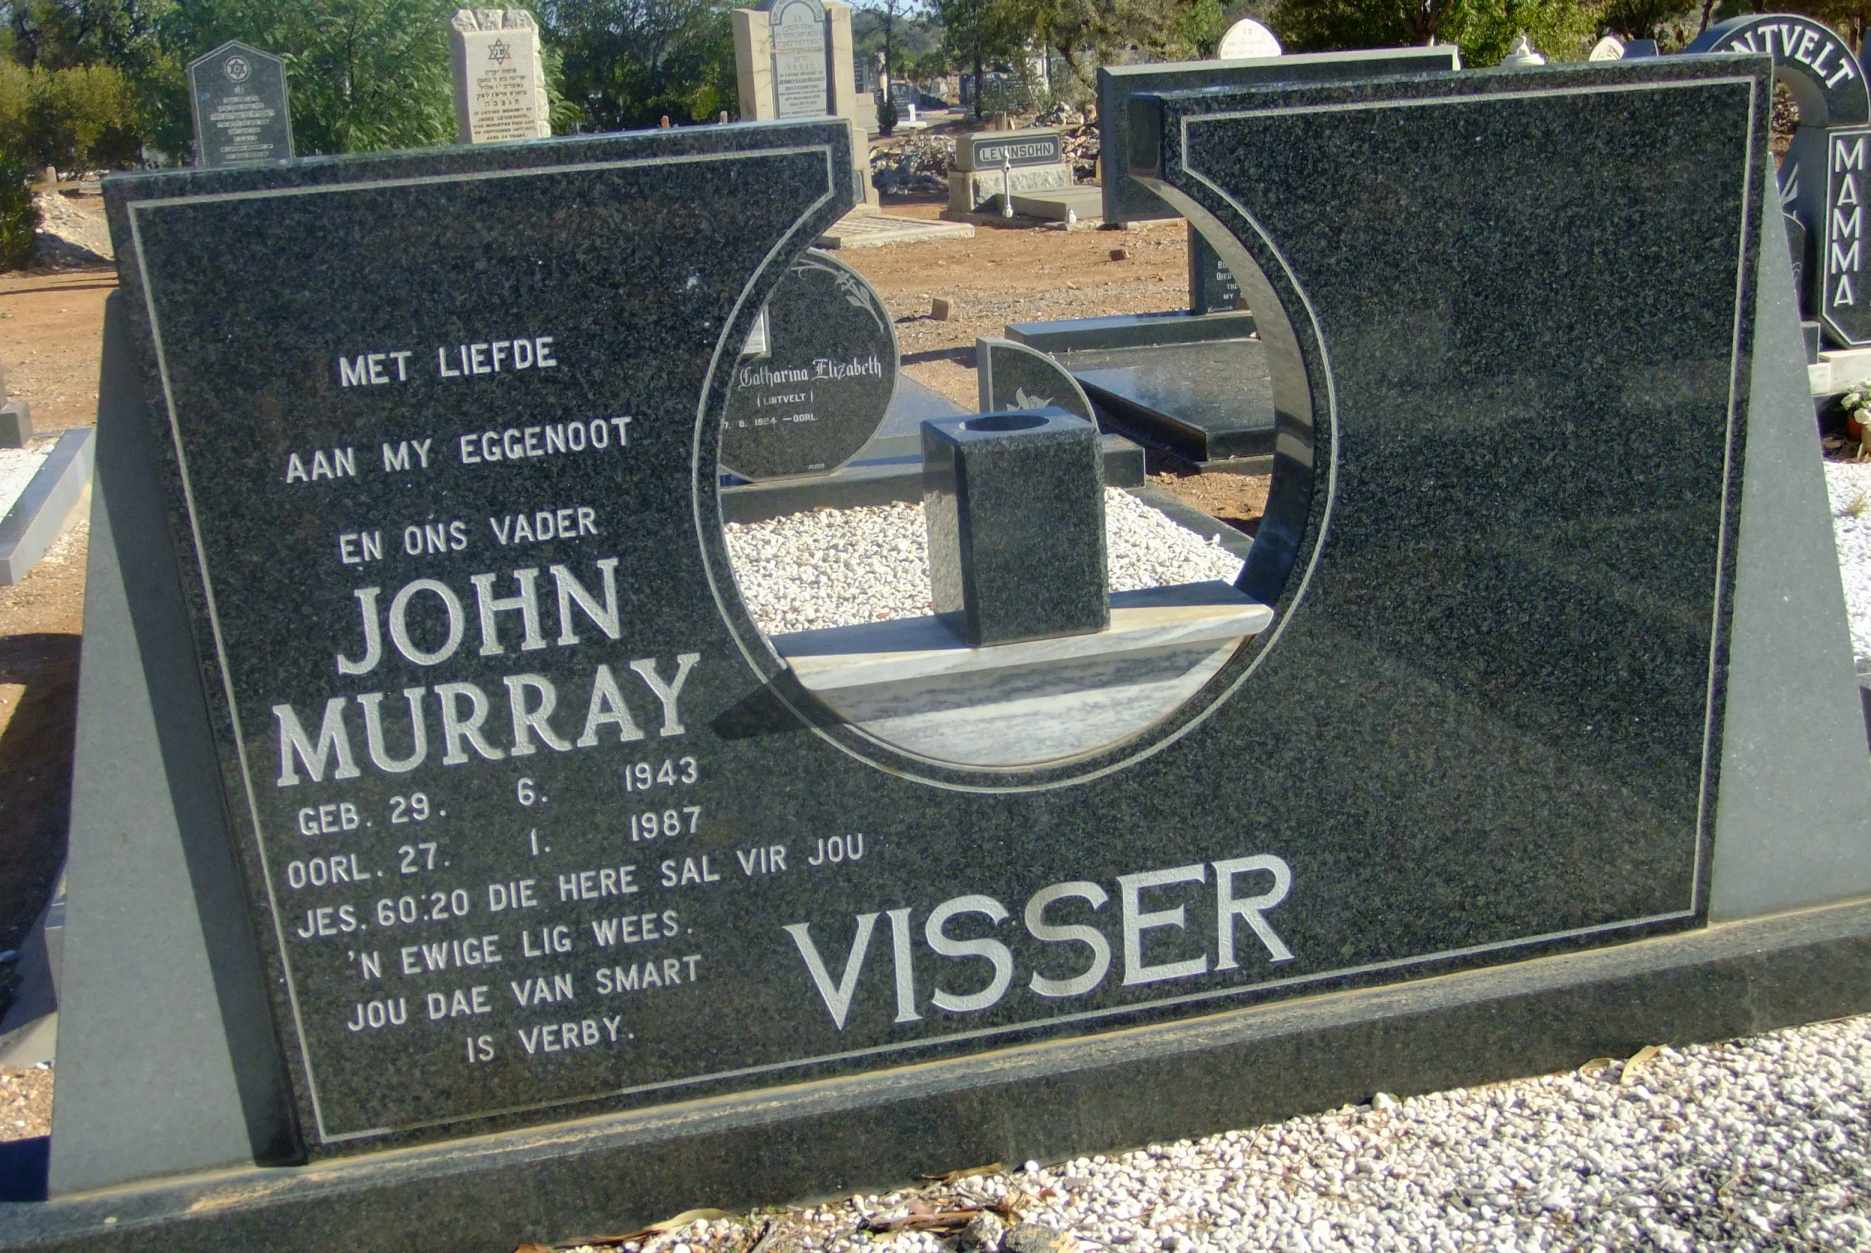 Visser, John Murrary born 29 June 1943 died 27 January 1987